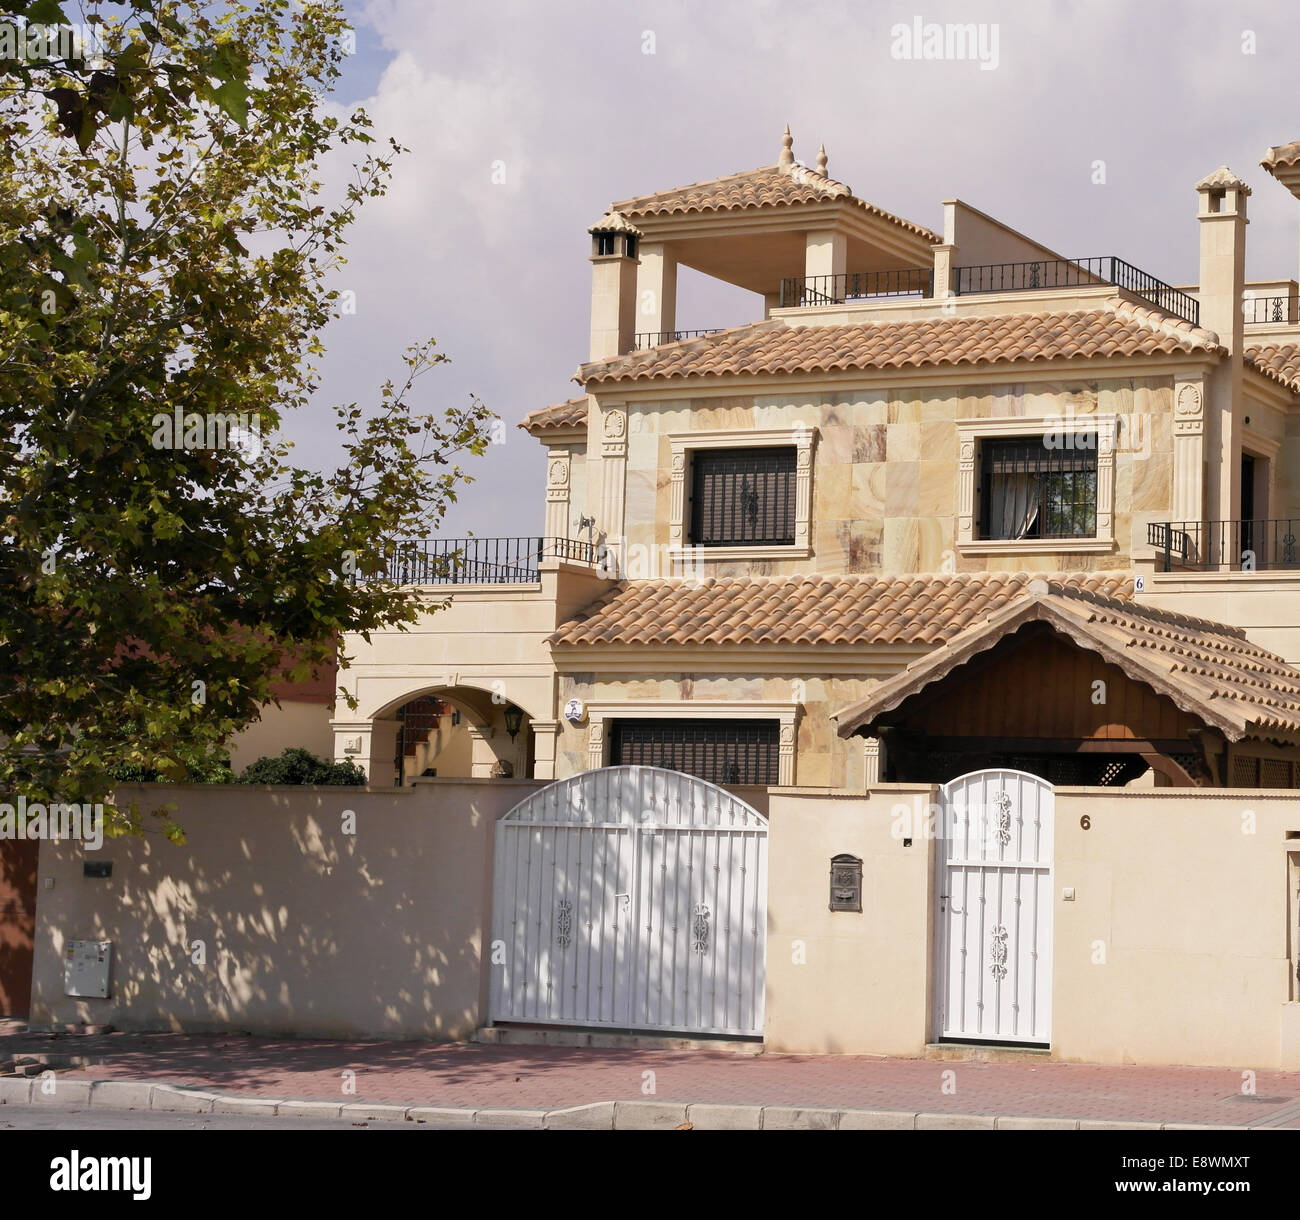 Page 2 Spanish Style House High Resolution Stock Photography And Images Alamy